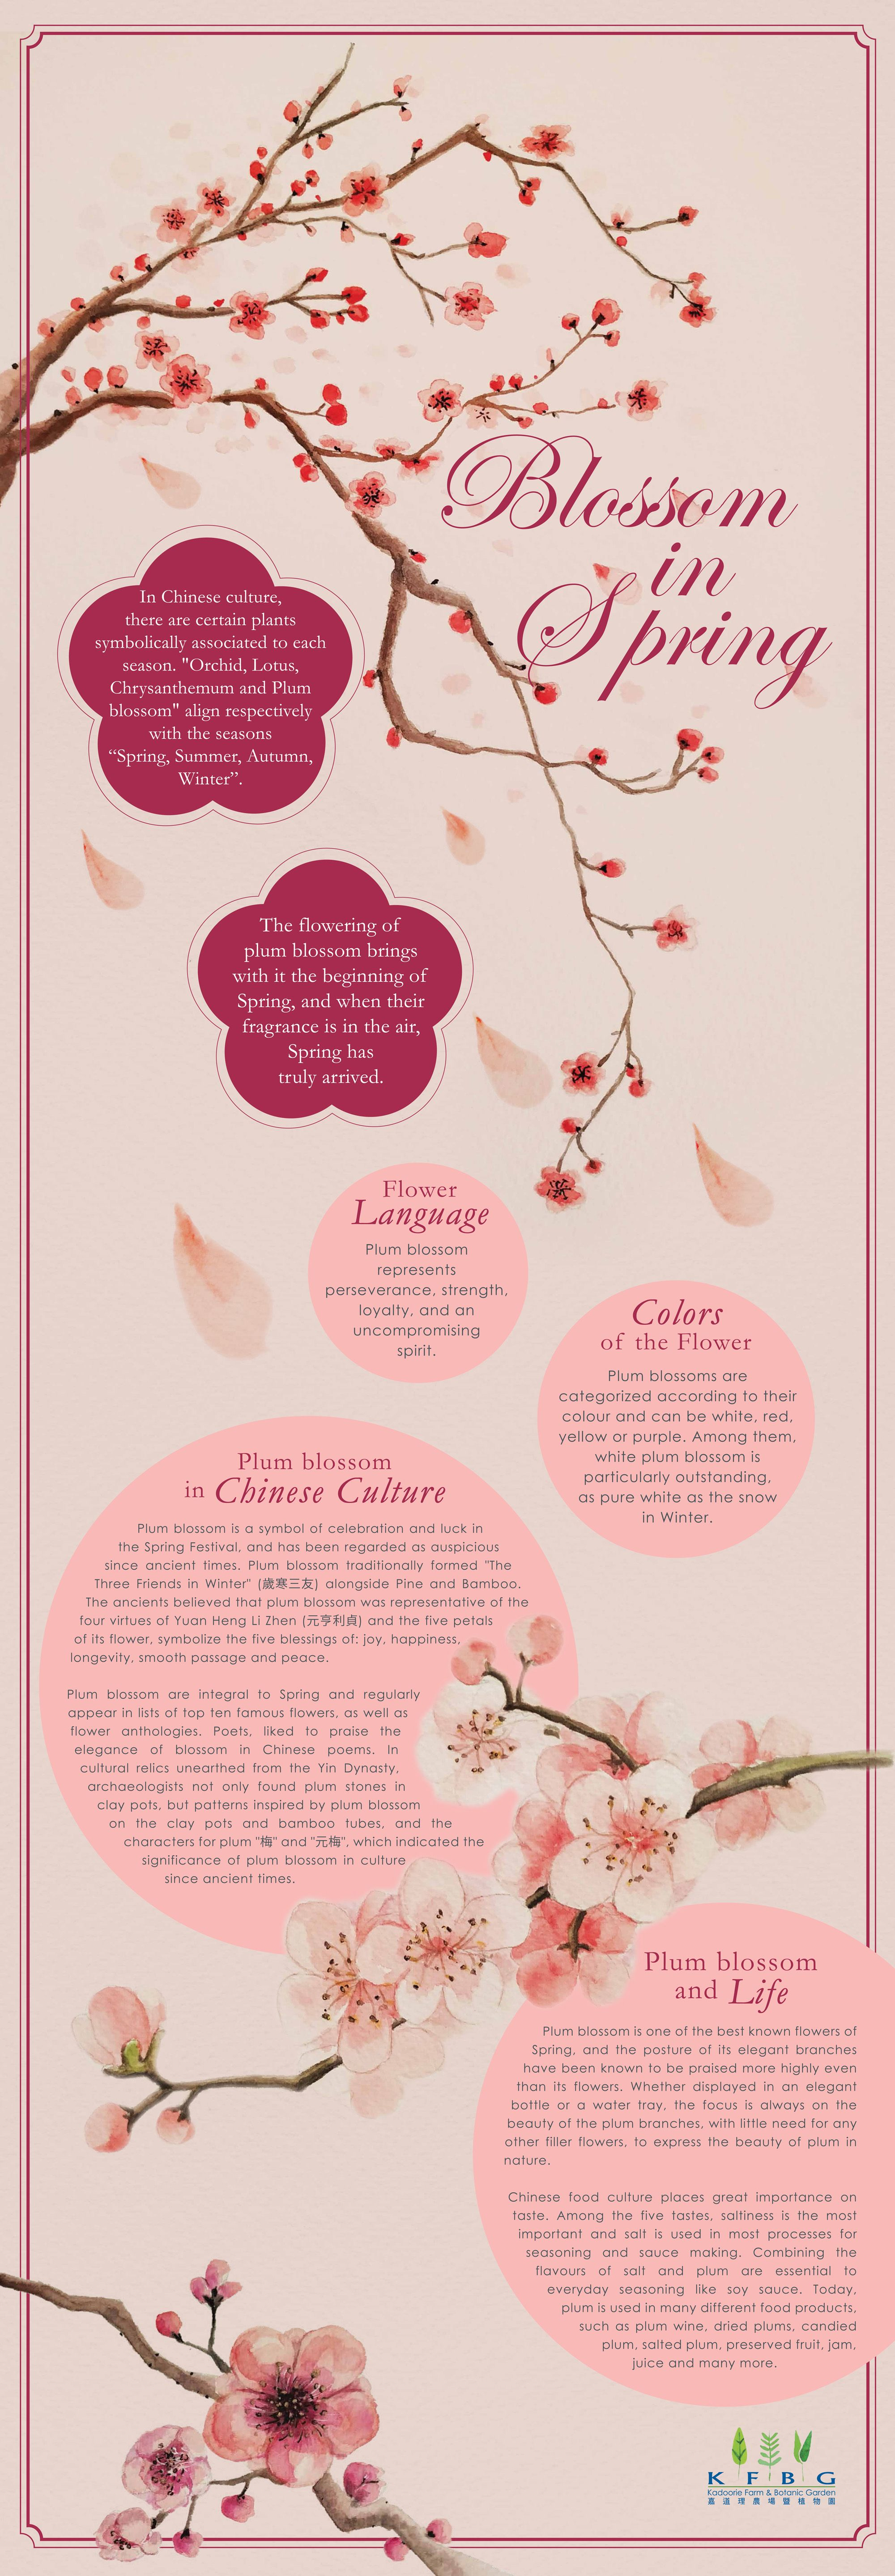 Blossom In Spring Plum Blossom Meaning Flower Meanings Blossom